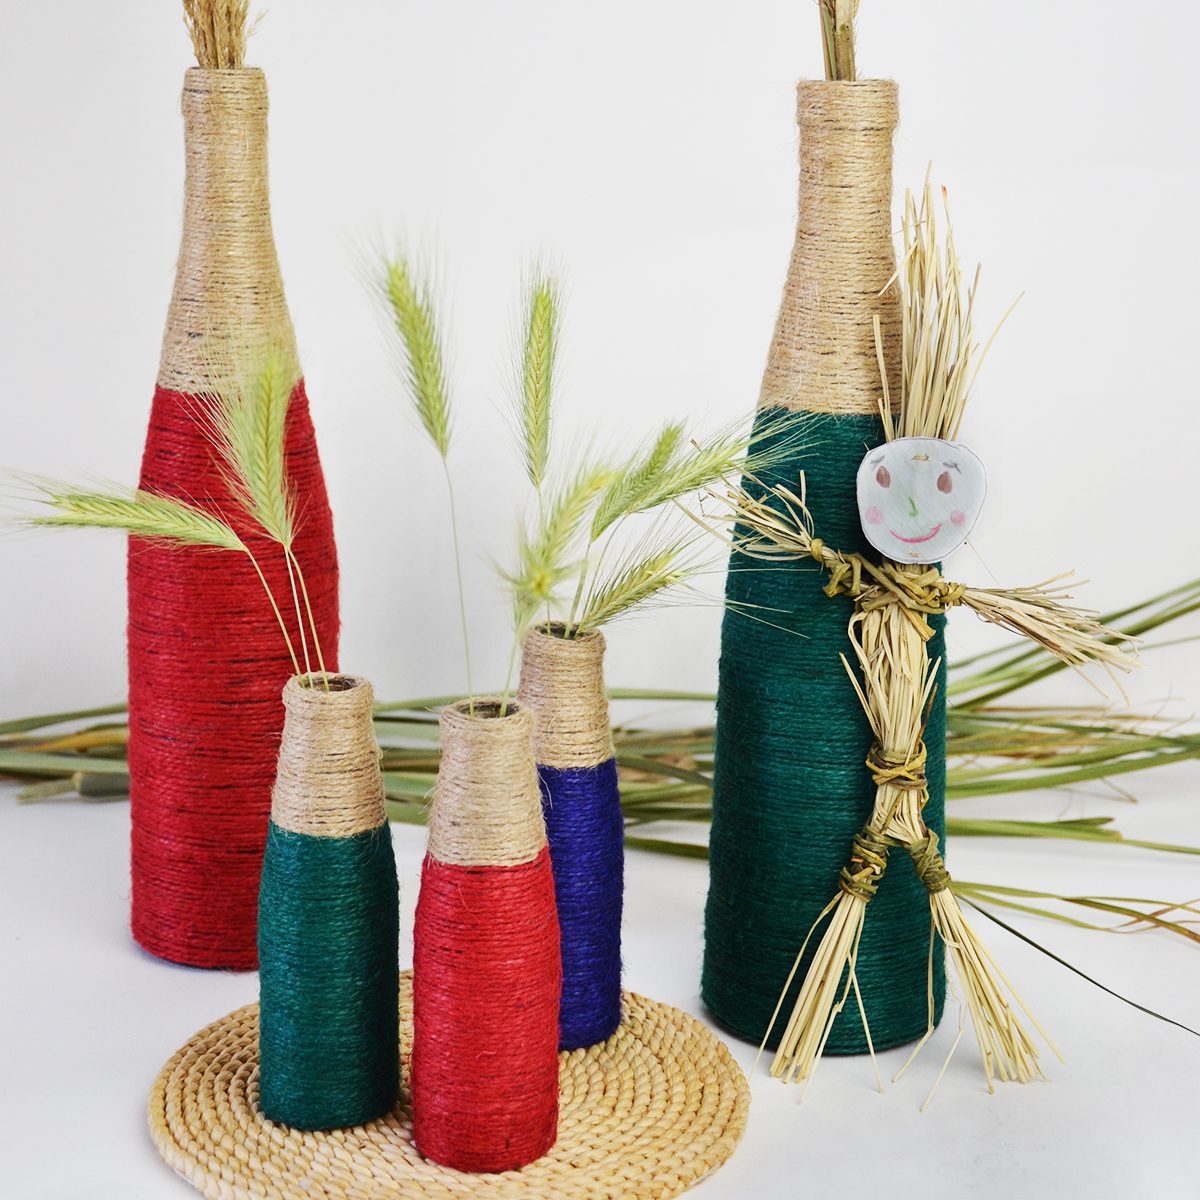 Diy wine bottle vases with colored twine cucicucicoo for Diy wine bottle gifts